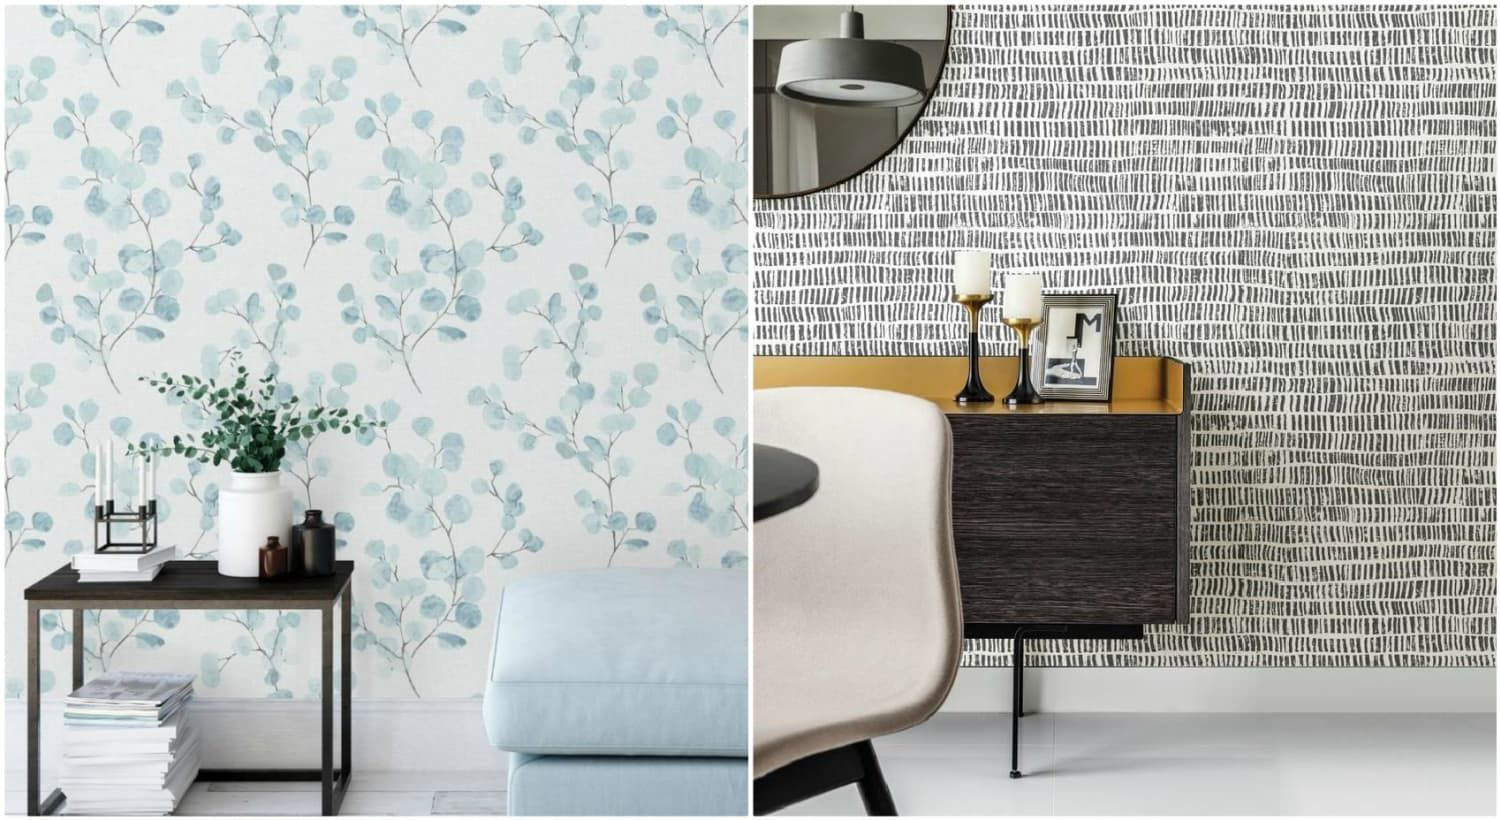 The Property Brothers Launched Peel And Stick Wallpaper And It S Time To Redecorate Peel And Stick Wallpaper Redecorating Peel N Stick Wallpaper